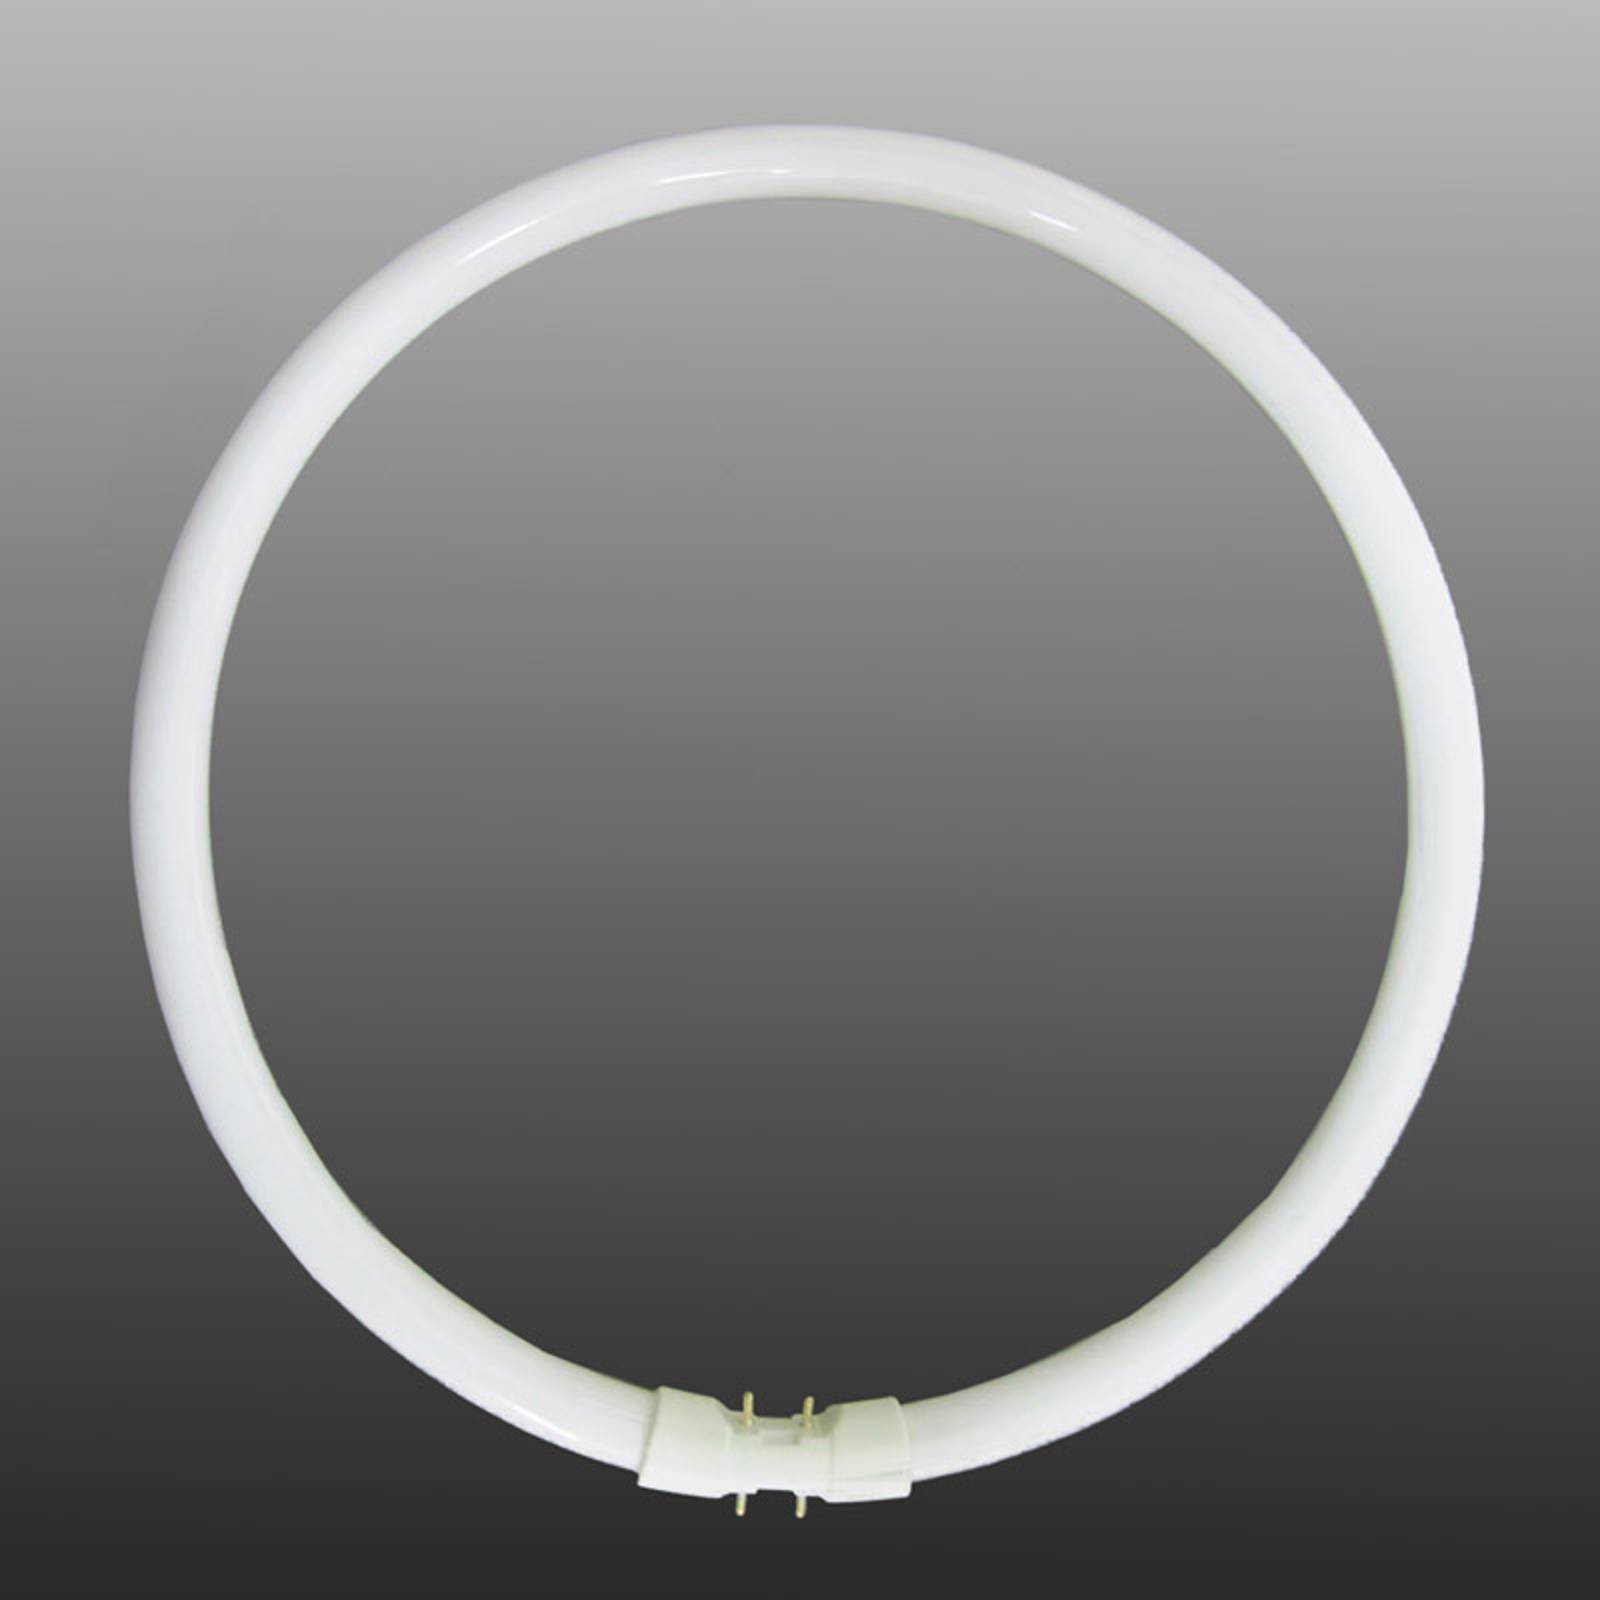 2GX13 T5 40W fluorescent ring, cool white from Stylvania